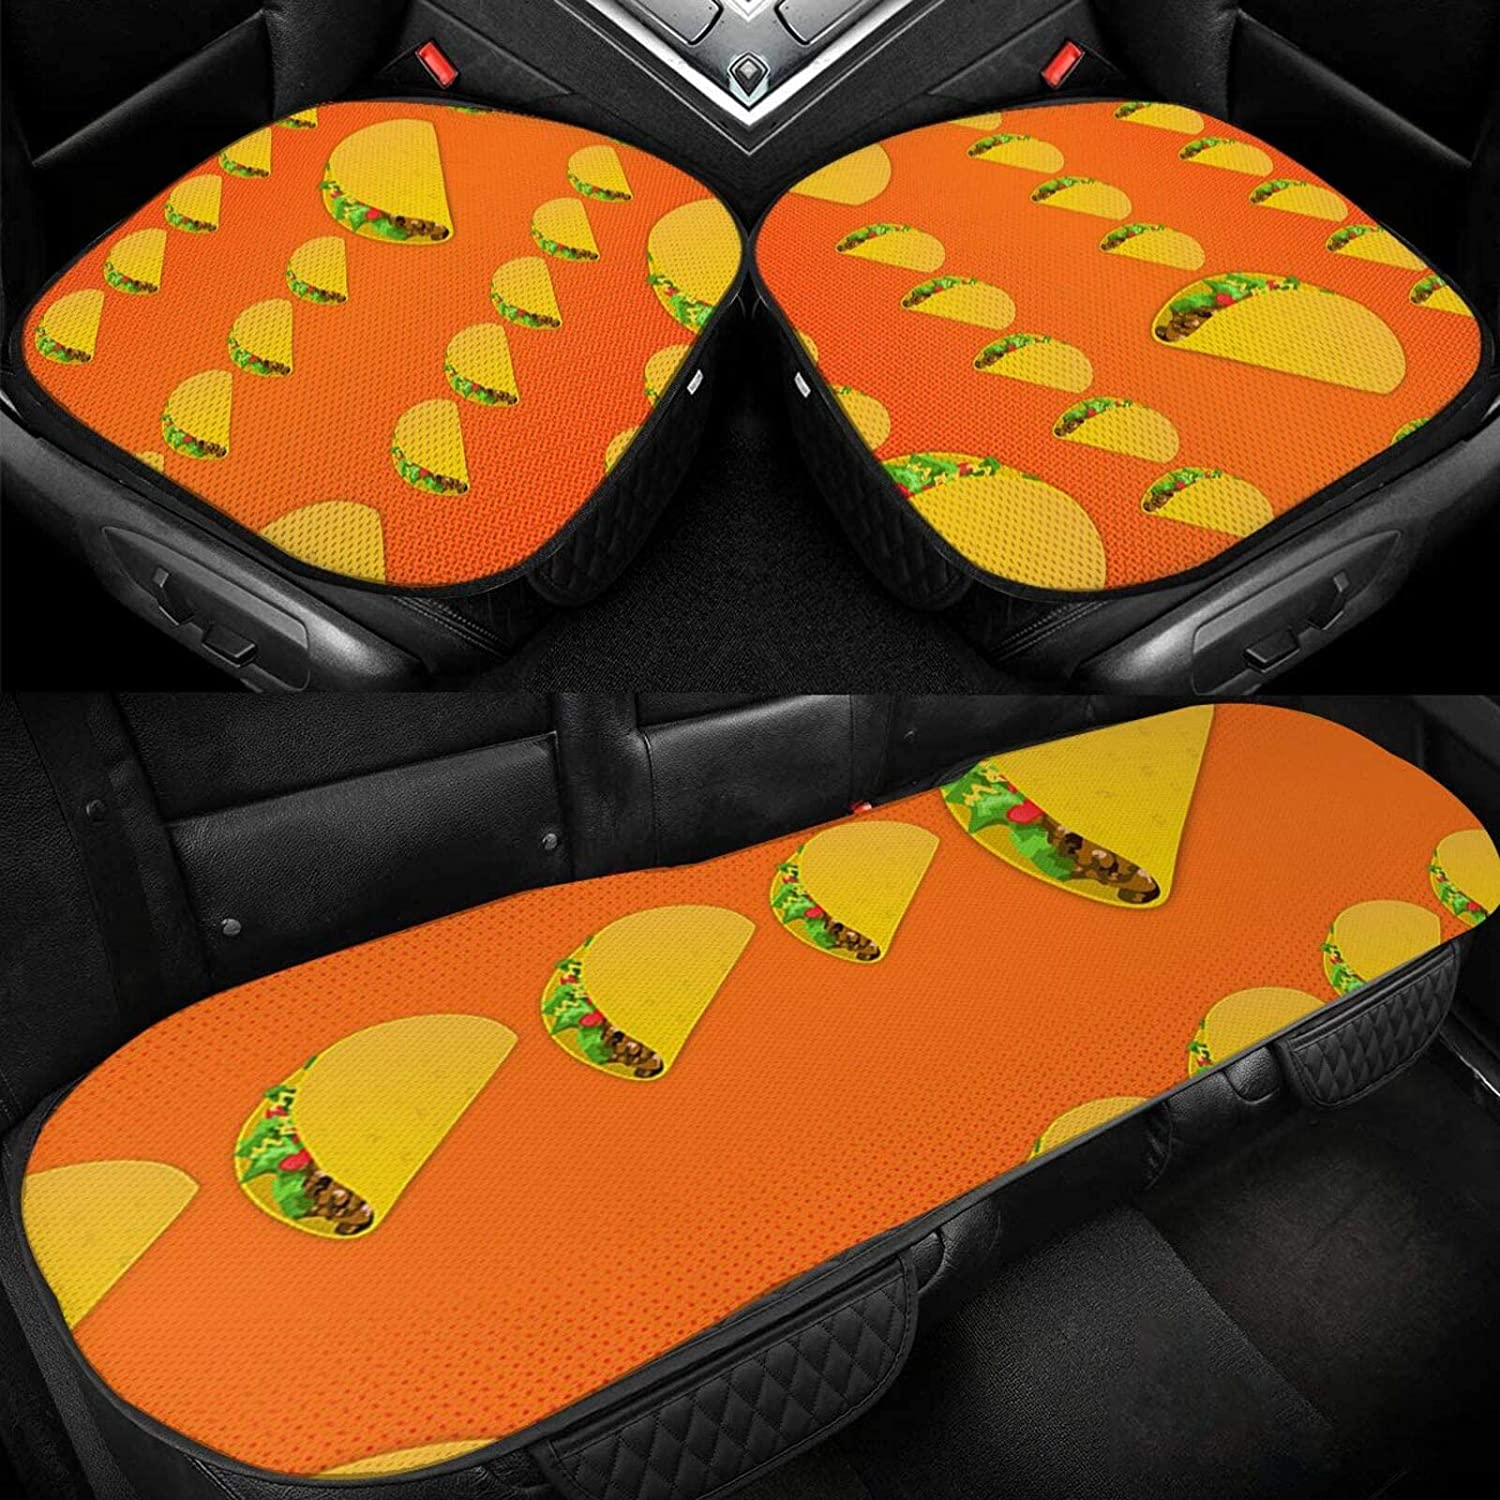 Car Seat Cushion Covers Fast Food Bottom Cover Ranking integrated 1st place for New arrival M Orange